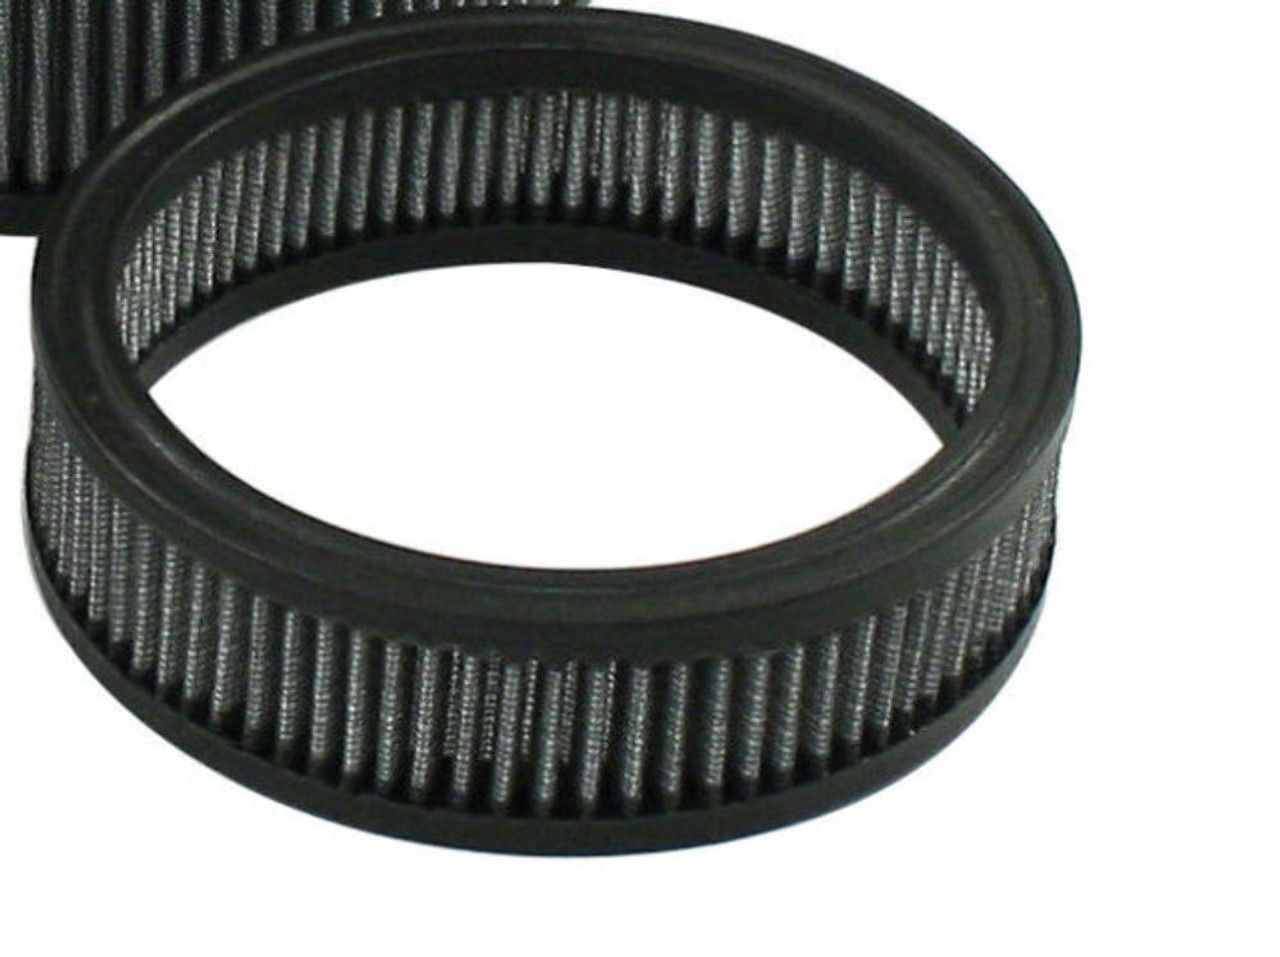 EMPI VW BUG BUGGY GAUZE AIR CLEANER ELEMENT ,OVAL 7 X 4-1/2 X 1-3/4 TALL 8736